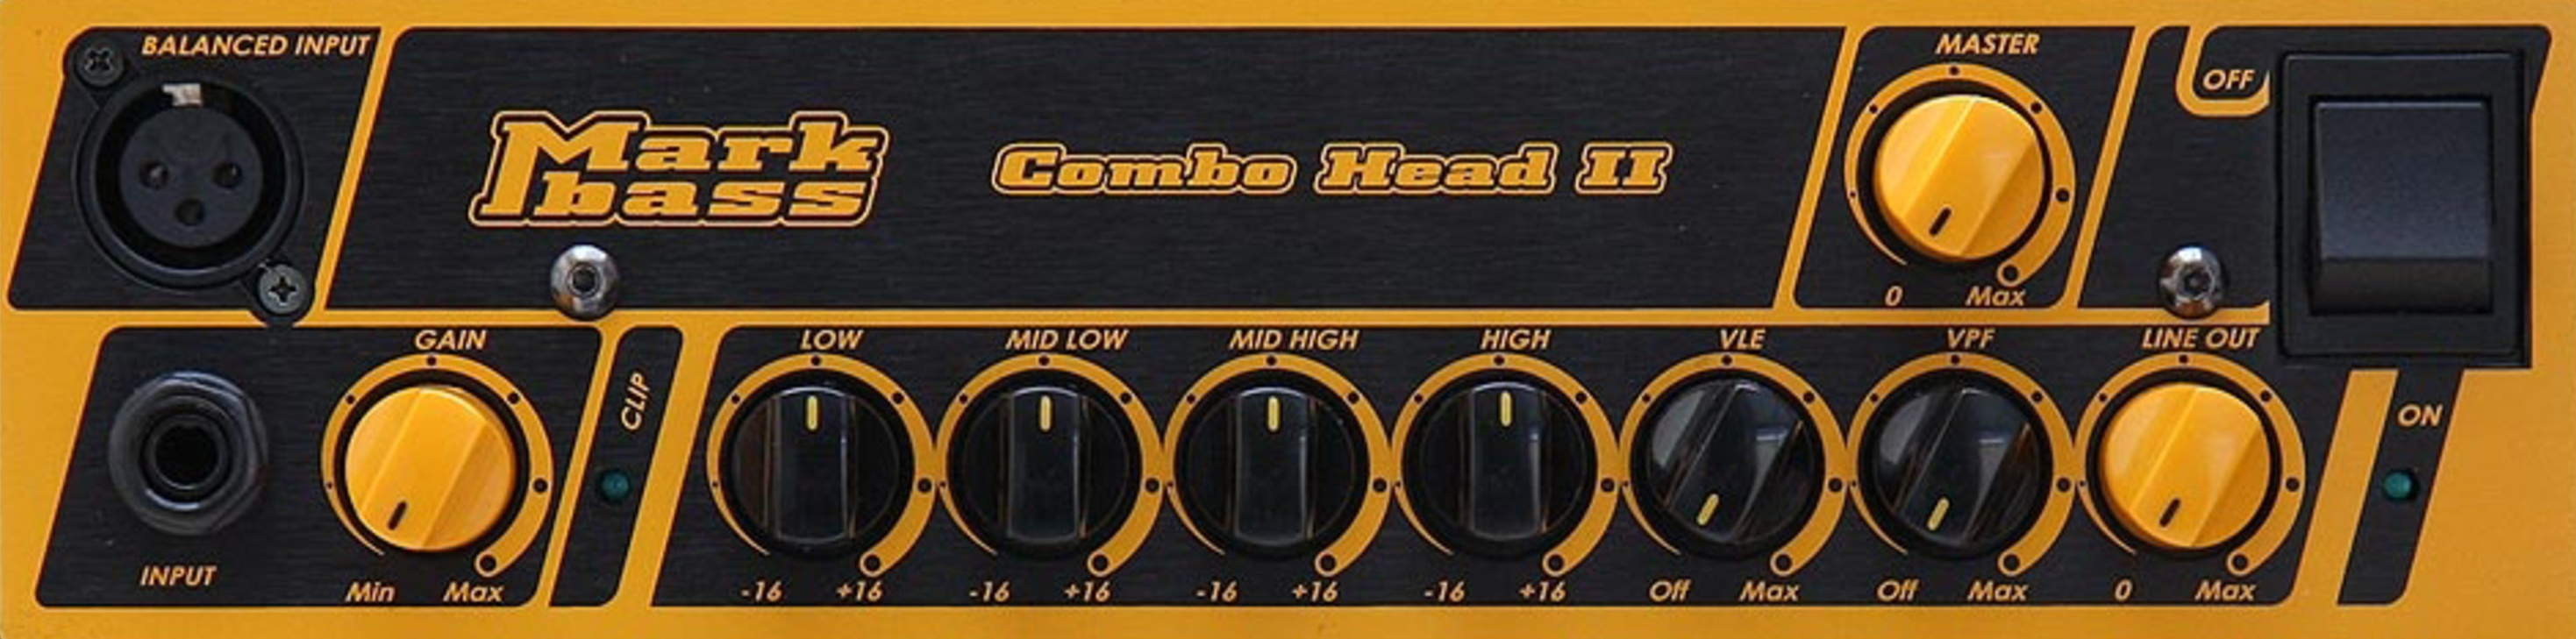 MARKBASS CMD 102 P LM3 Combo Front Panel